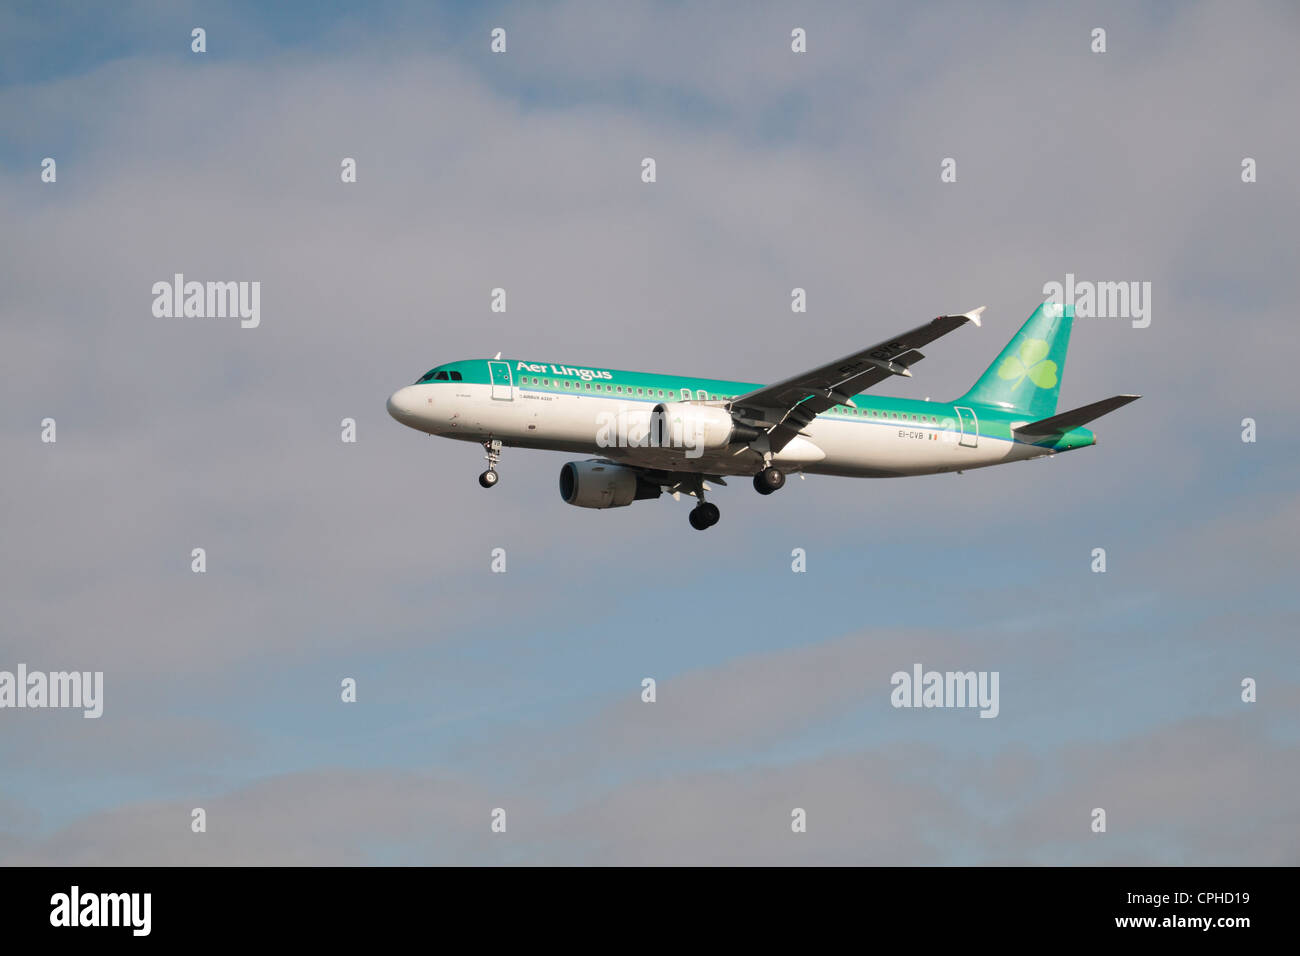 An Aer Lingus Airbus A320-214 about to land at Heathrow Airport, London, UK. - Stock Image